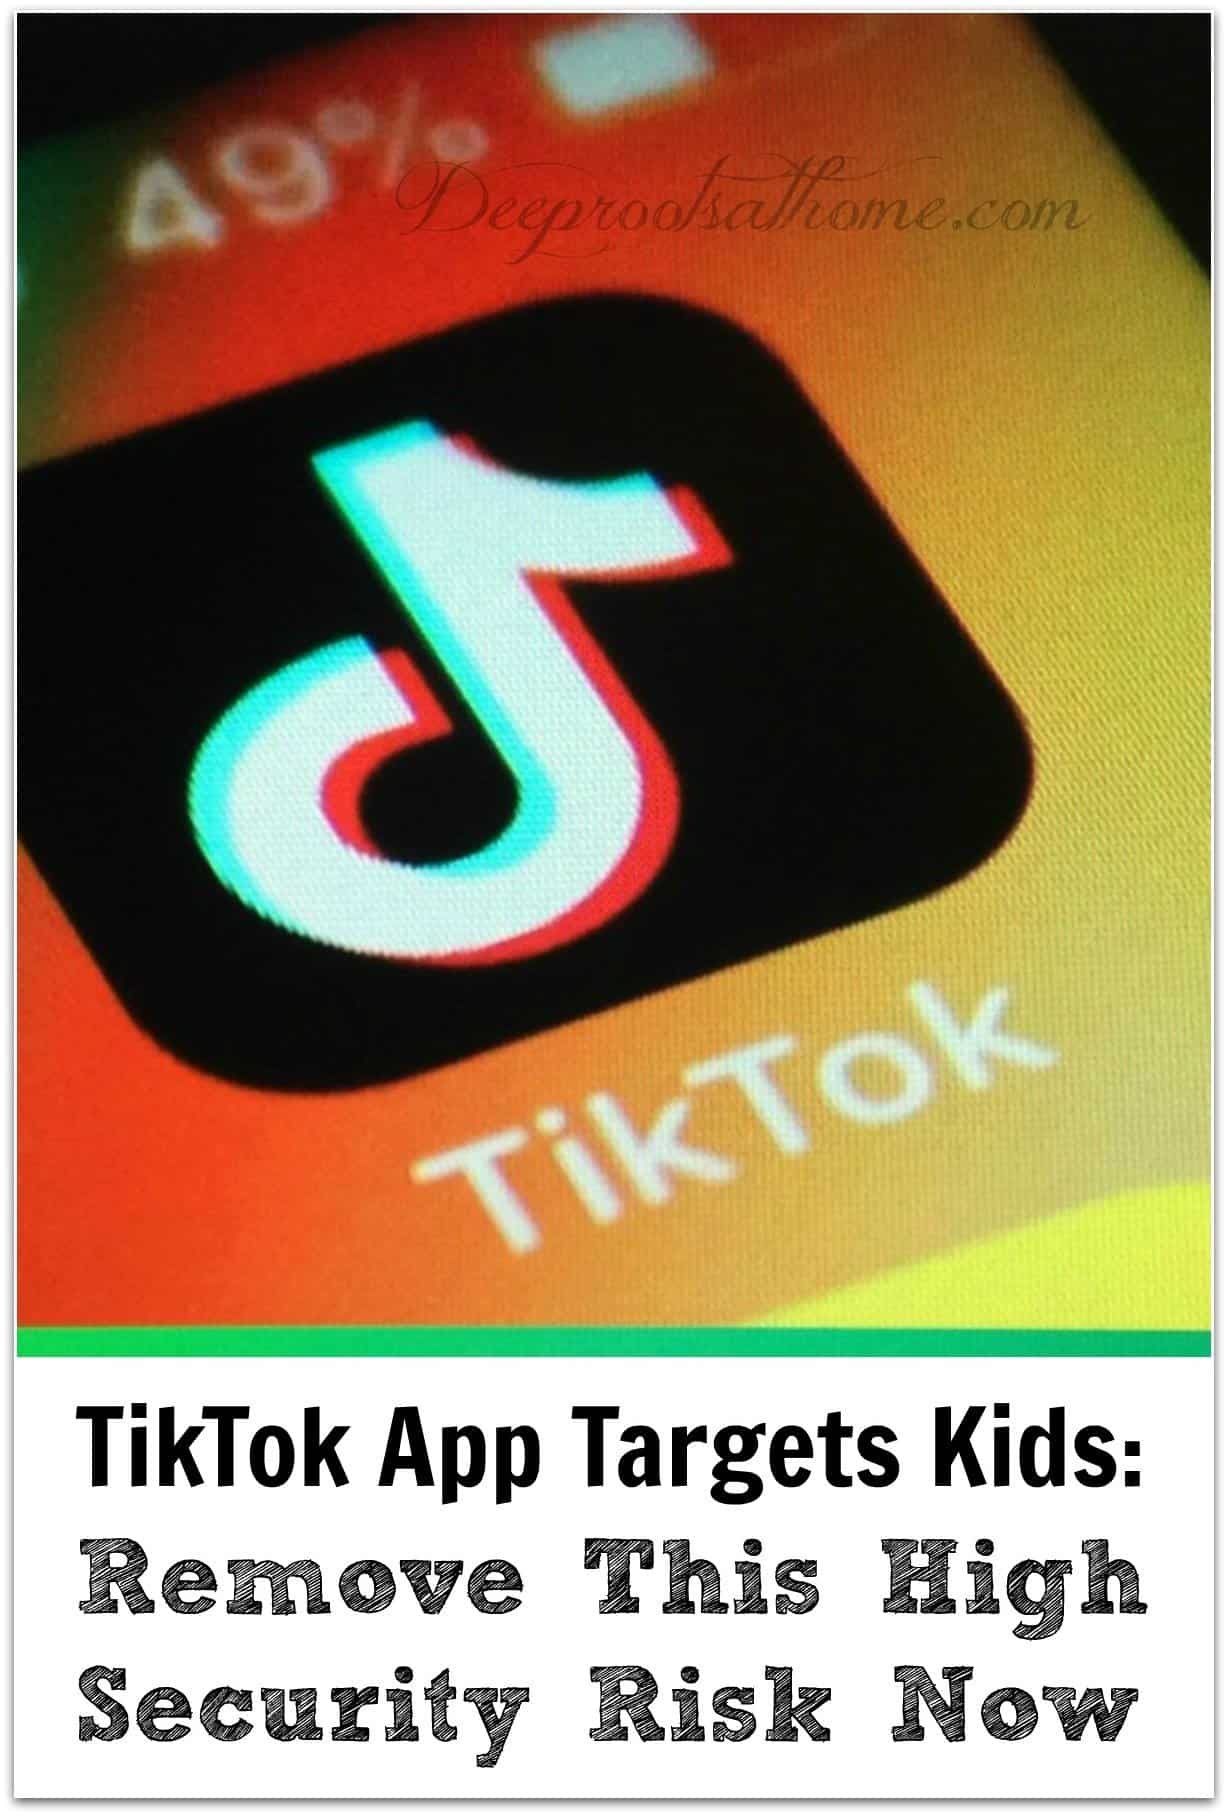 TikTok App Targets Kids: Please Remove This High Security Risk Now. app